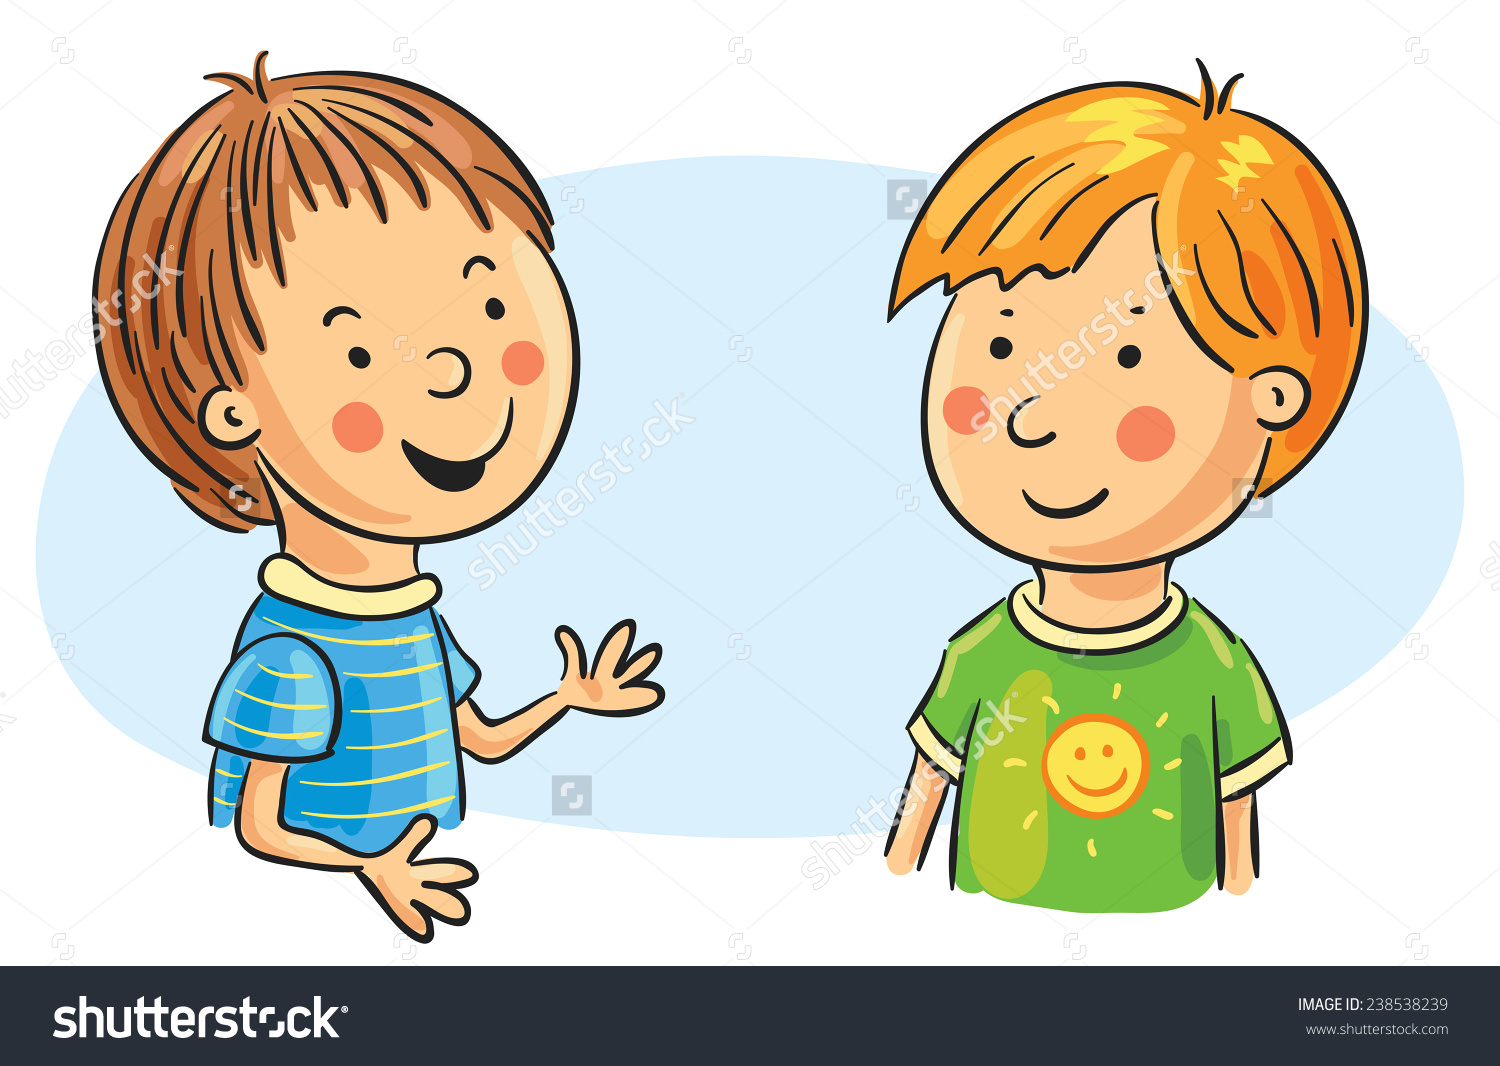 Two Boy Talking Clipart-two boy talking clipart-17